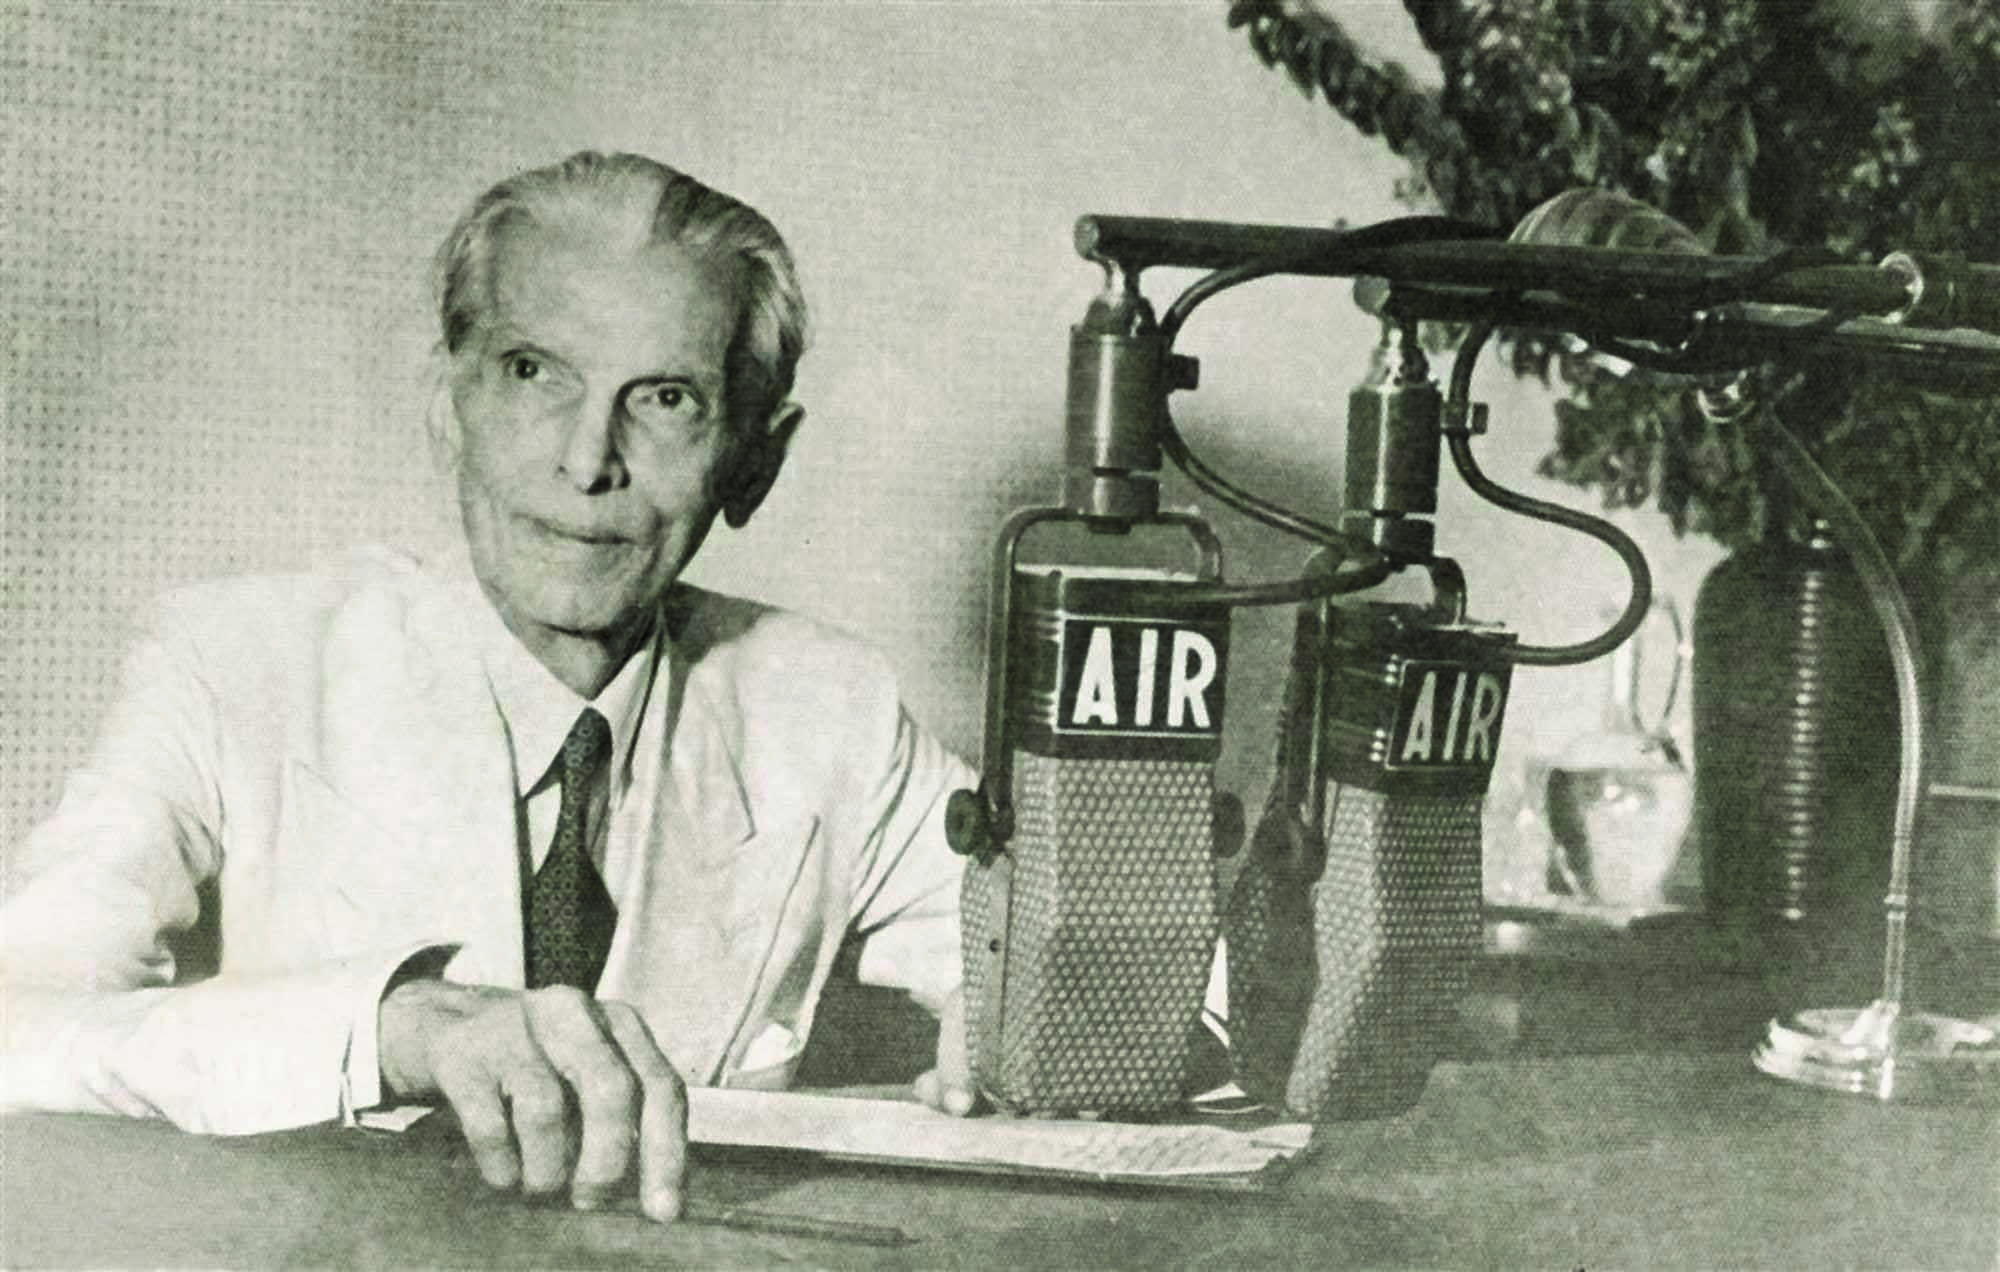 RESPONDING TO LORD MOUNTBATTEN: Mr Jinnah is about to record his response to Lord Mountbatten's June 3 Plan about the partition of India into two dominions.